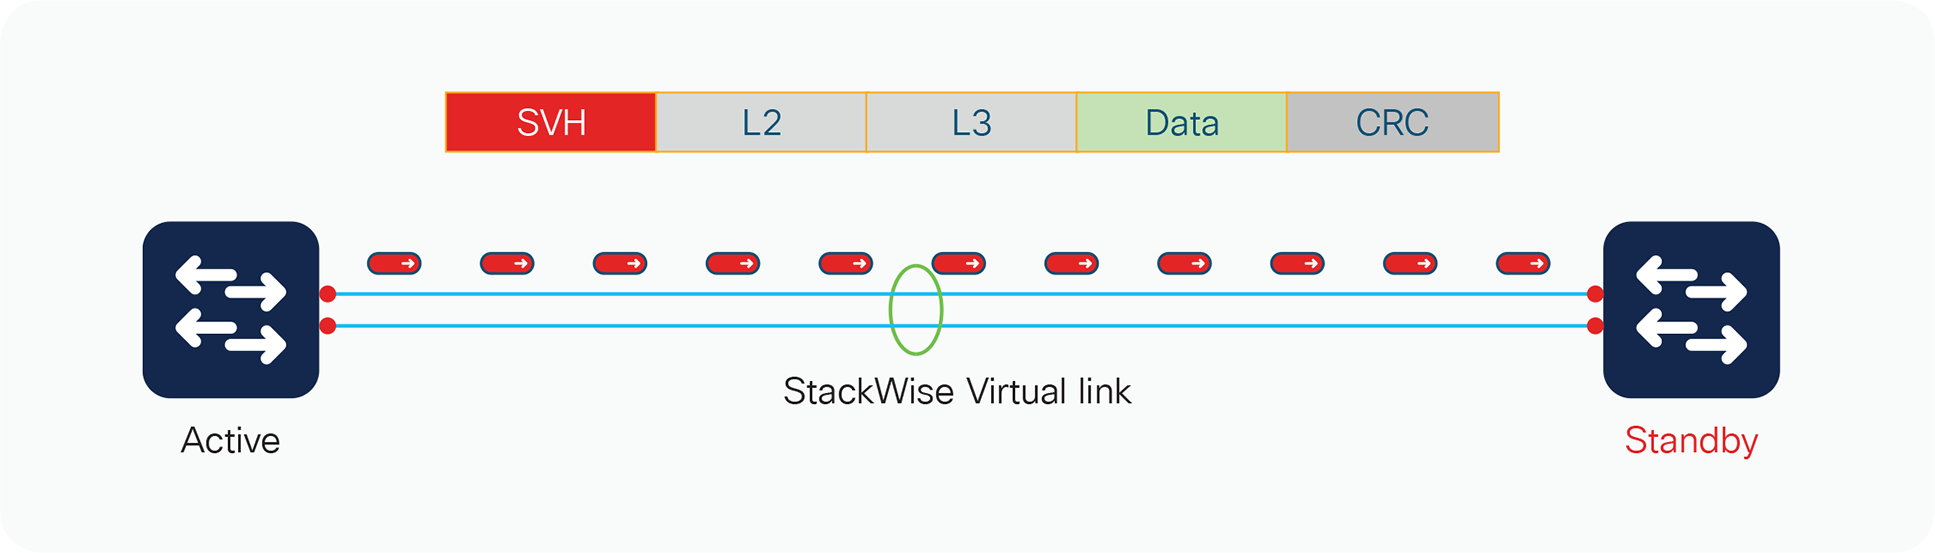 Products - Cisco Catalyst 9000 Platform StackWise Virtual White ...